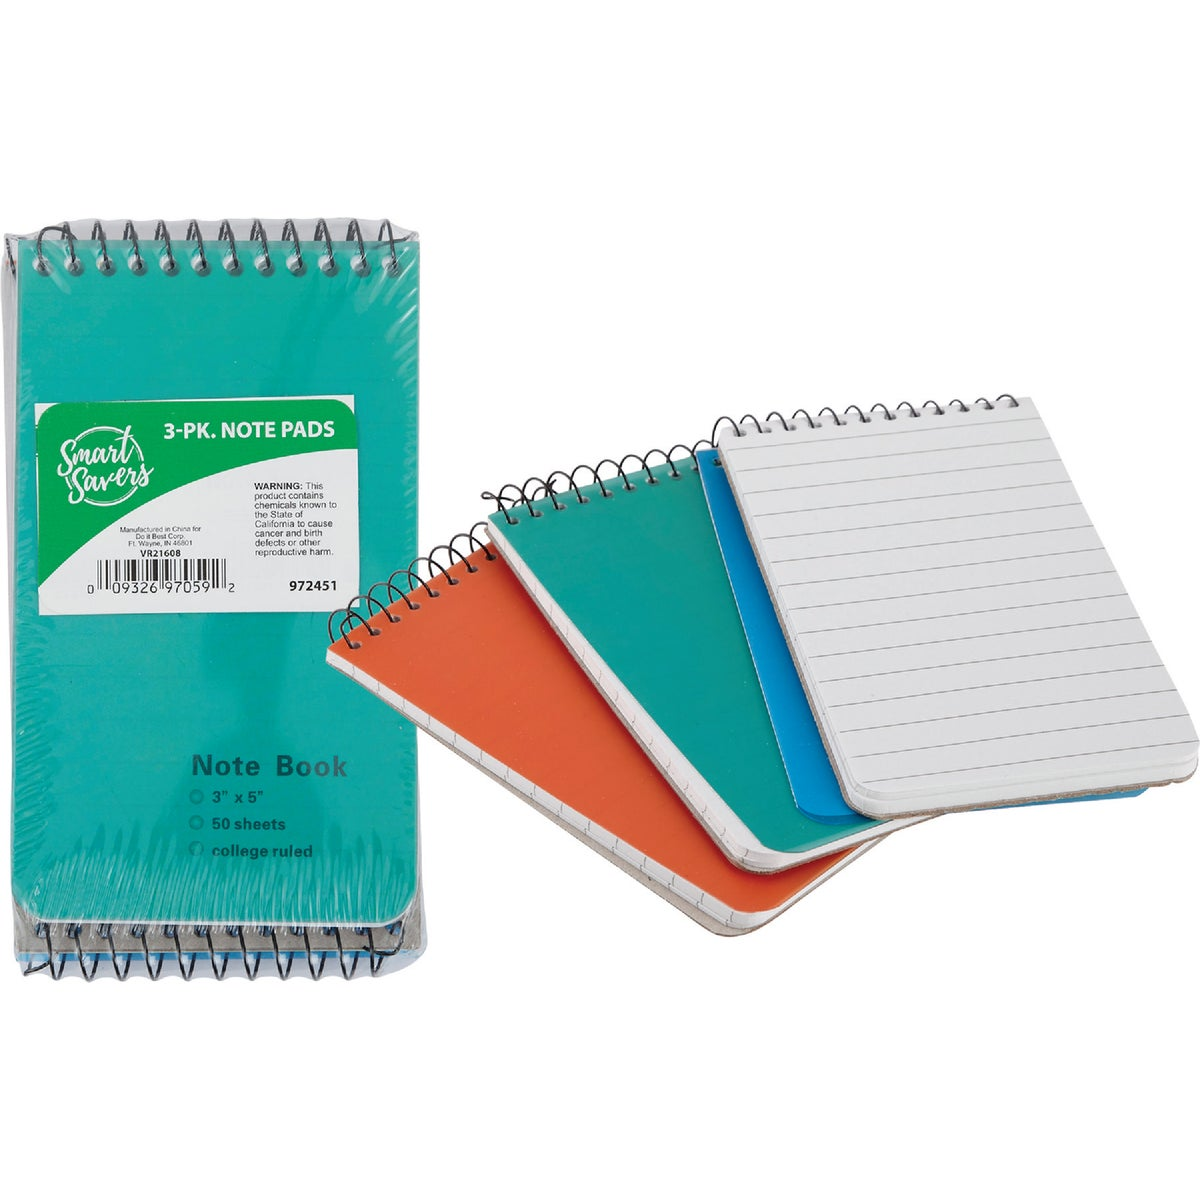 3PK NOTE PADS